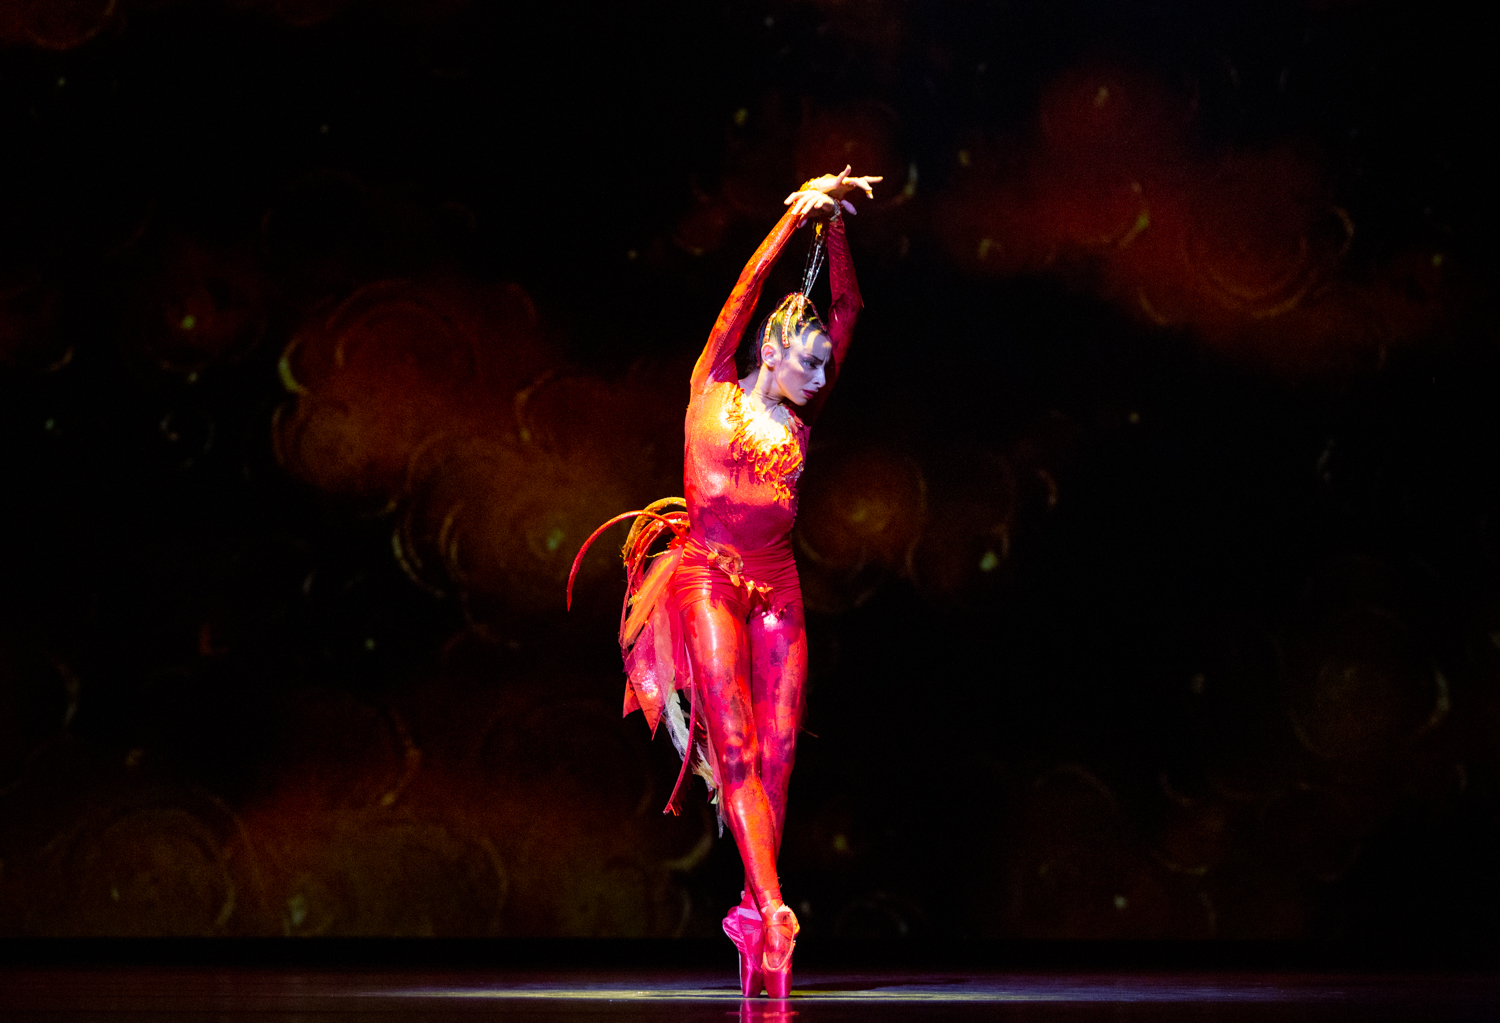 Nathalia Arja, wearing a bright red and orange bodysuit with feathers, leans slightly over, on pointe, arms raised above her head.